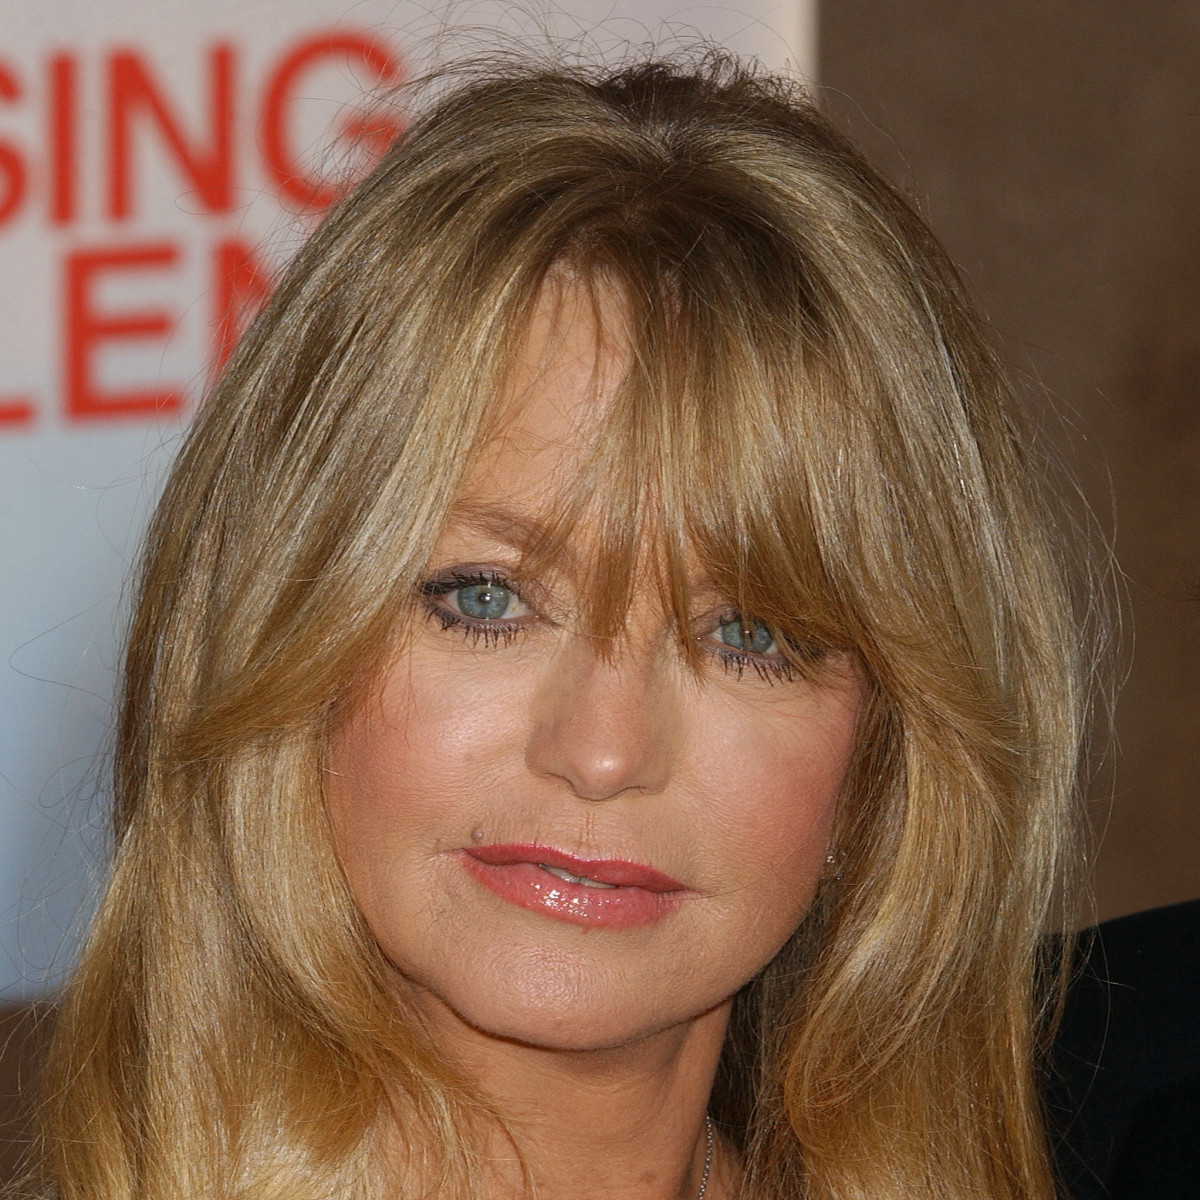 Discussion on this topic: Terra Hazelton, goldie-hawn/